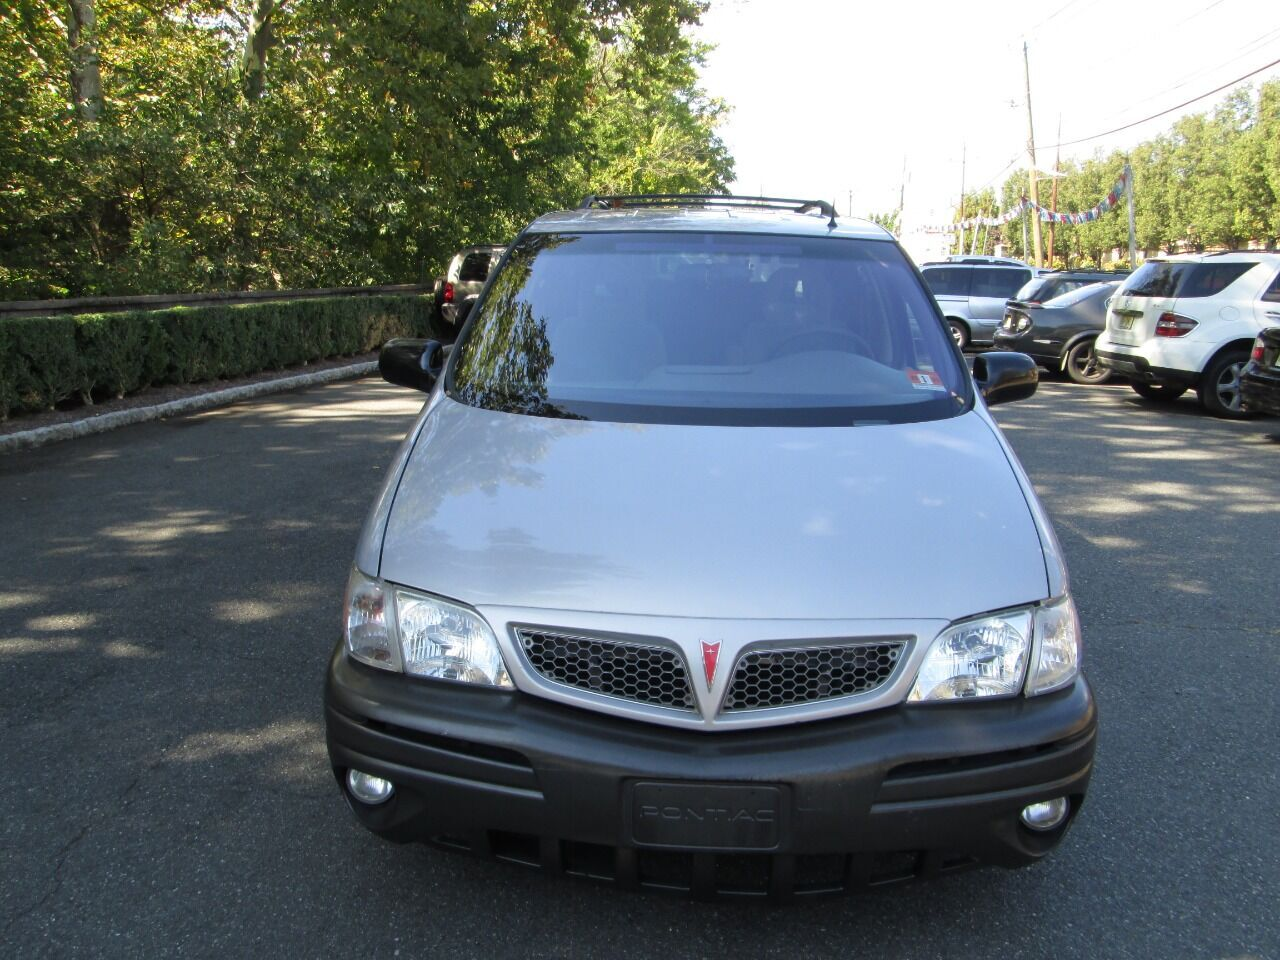 used 2001 pontiac montana for sale carsforsale com used 2001 pontiac montana for sale